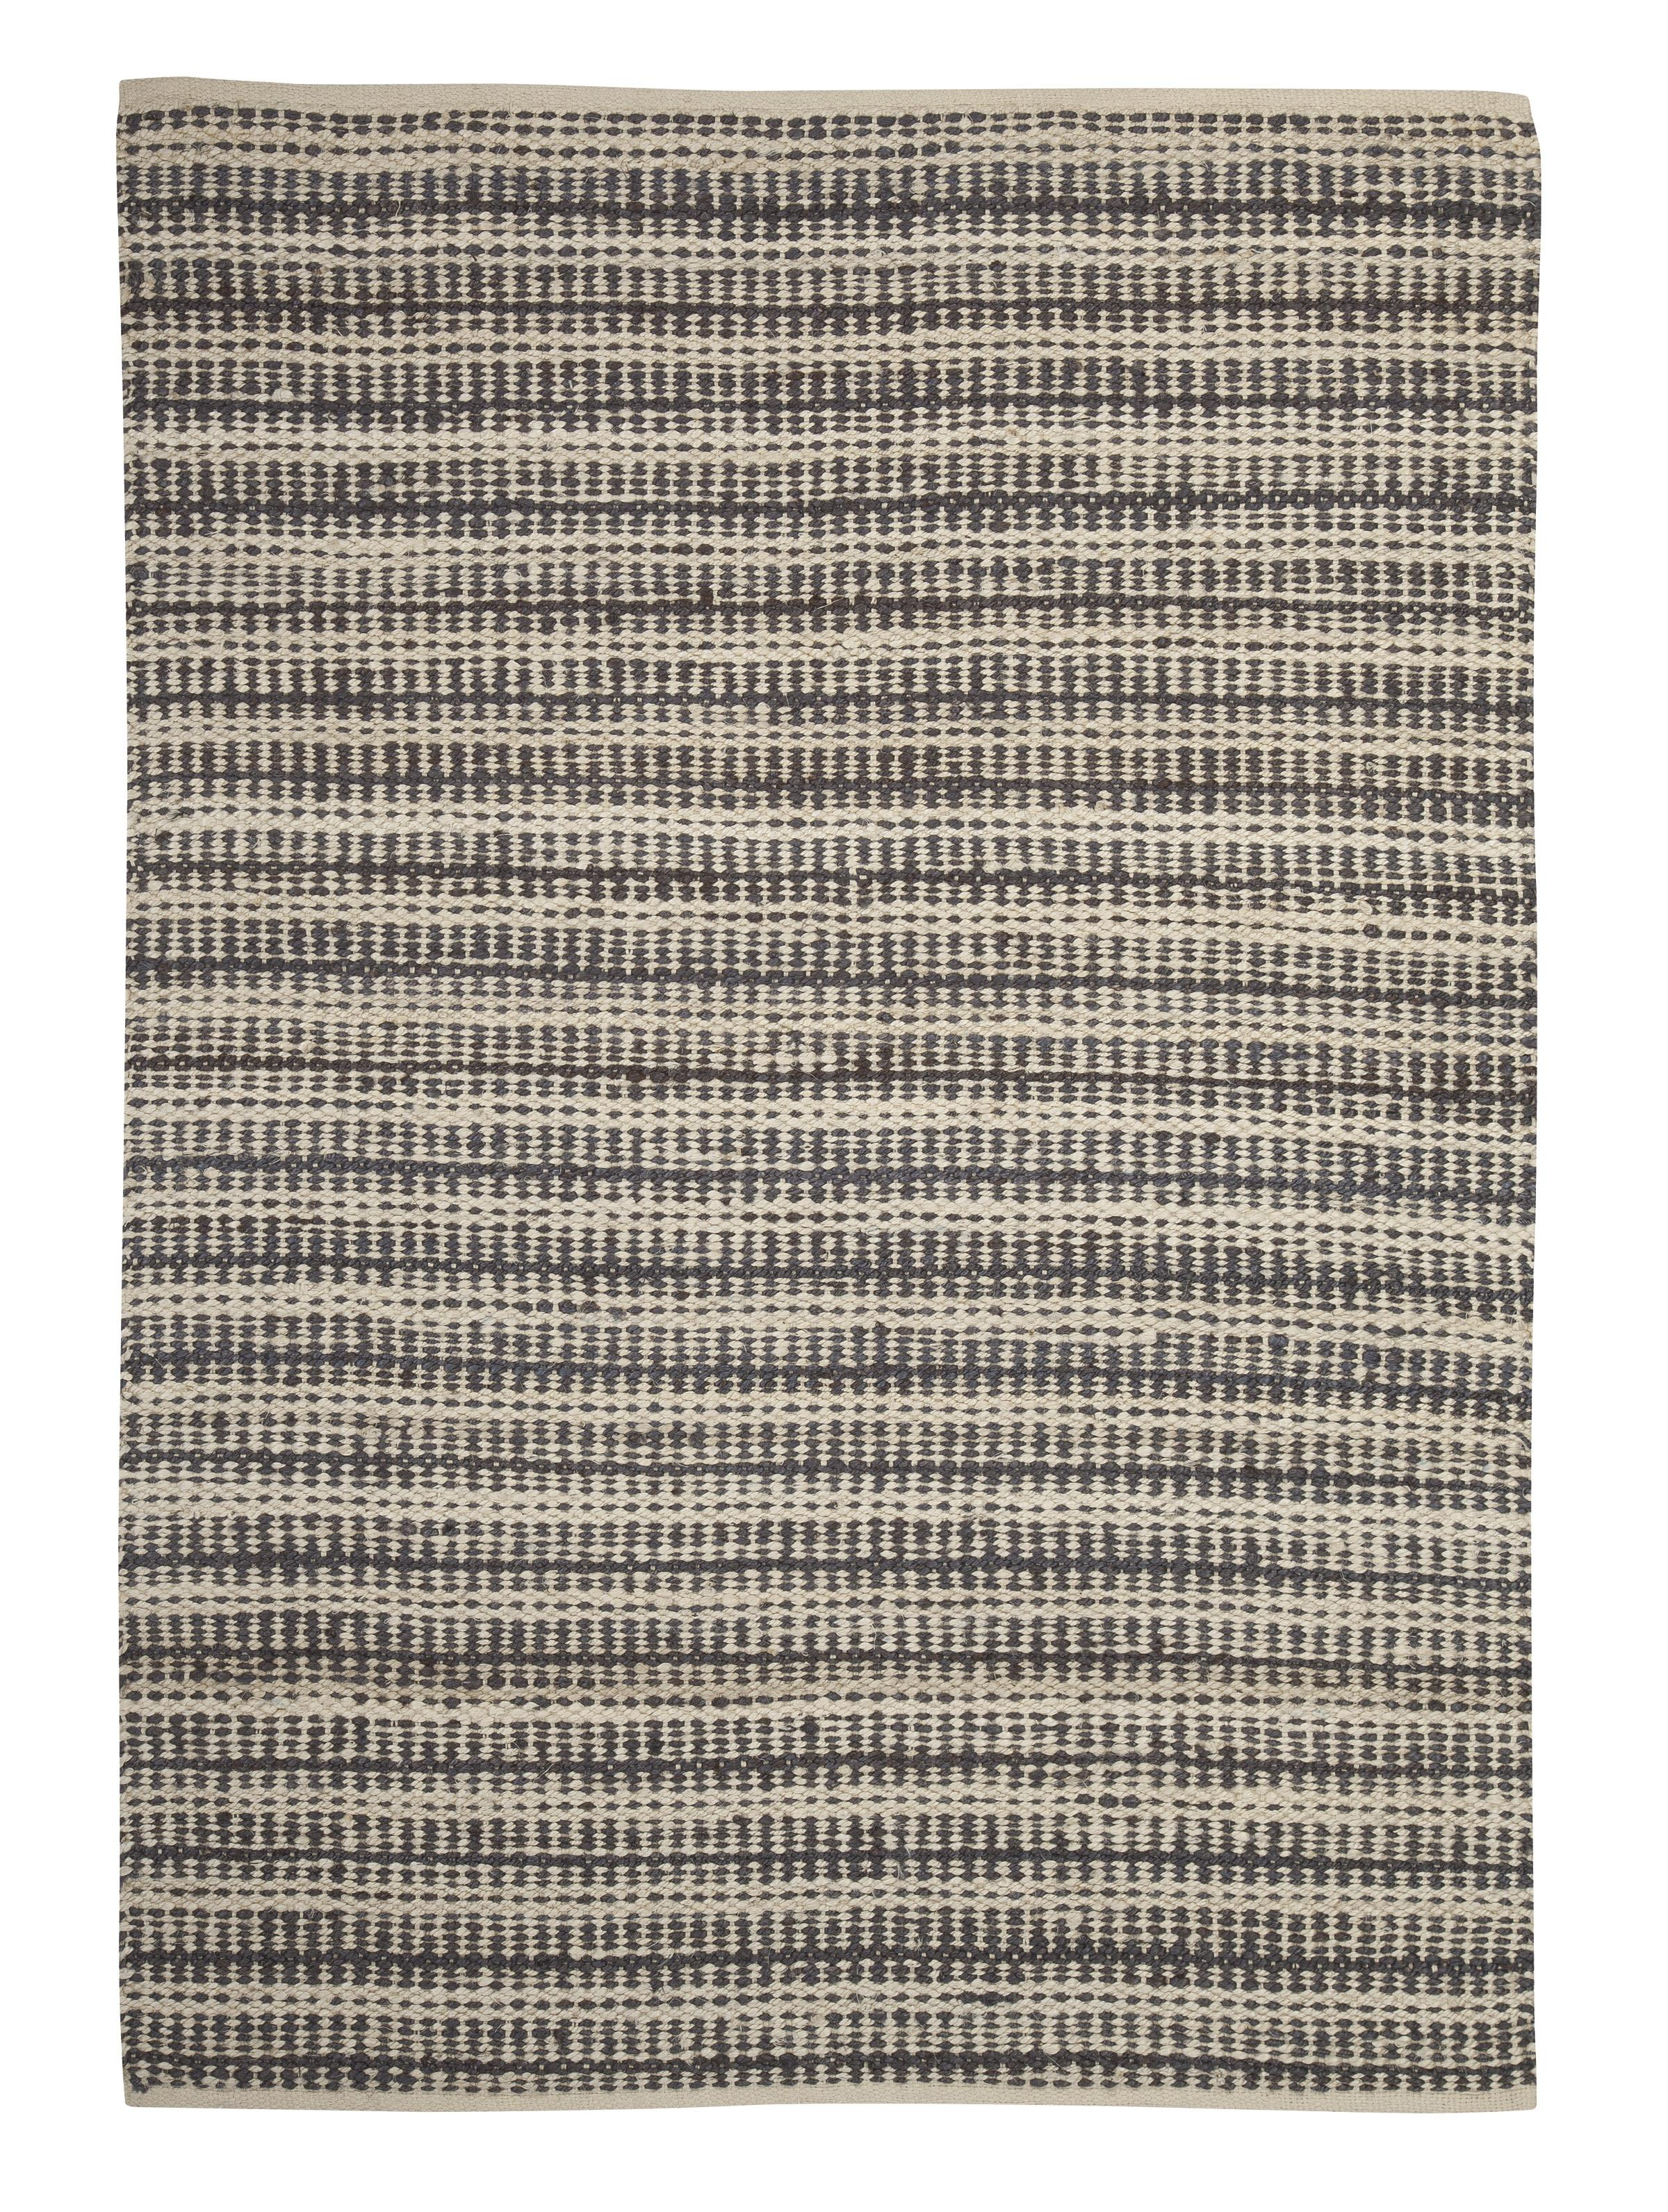 Signature Design by Ashley Transitional Area Rugs Chesney Tan/Gray Large Rug - Item Number: R257001